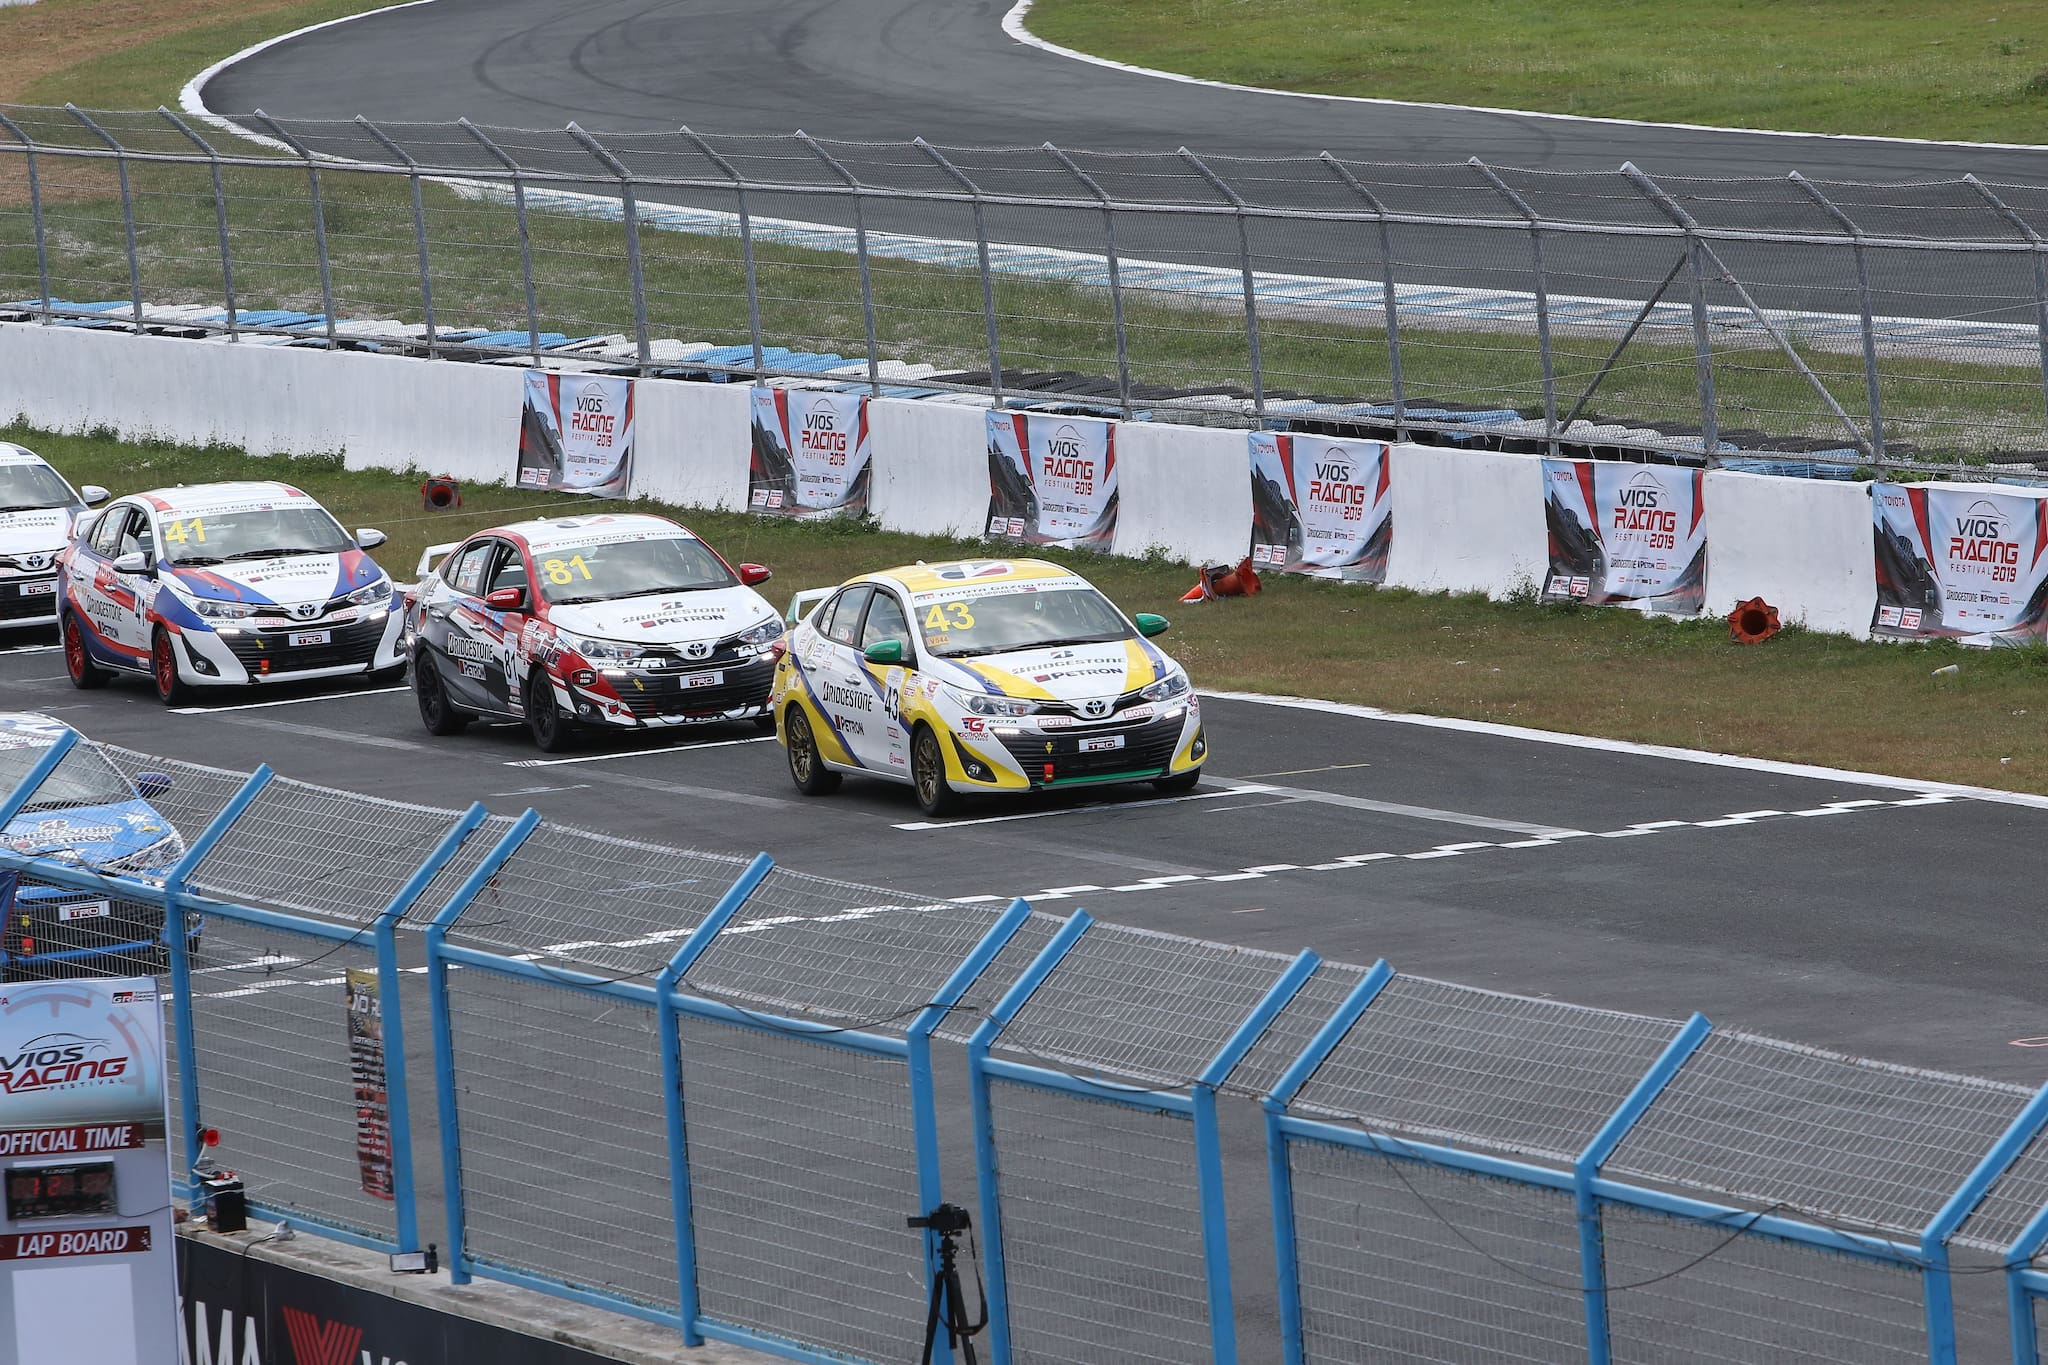 Watch the Waku-Doki Moments of the Toyota Vios Racing Festival on 5